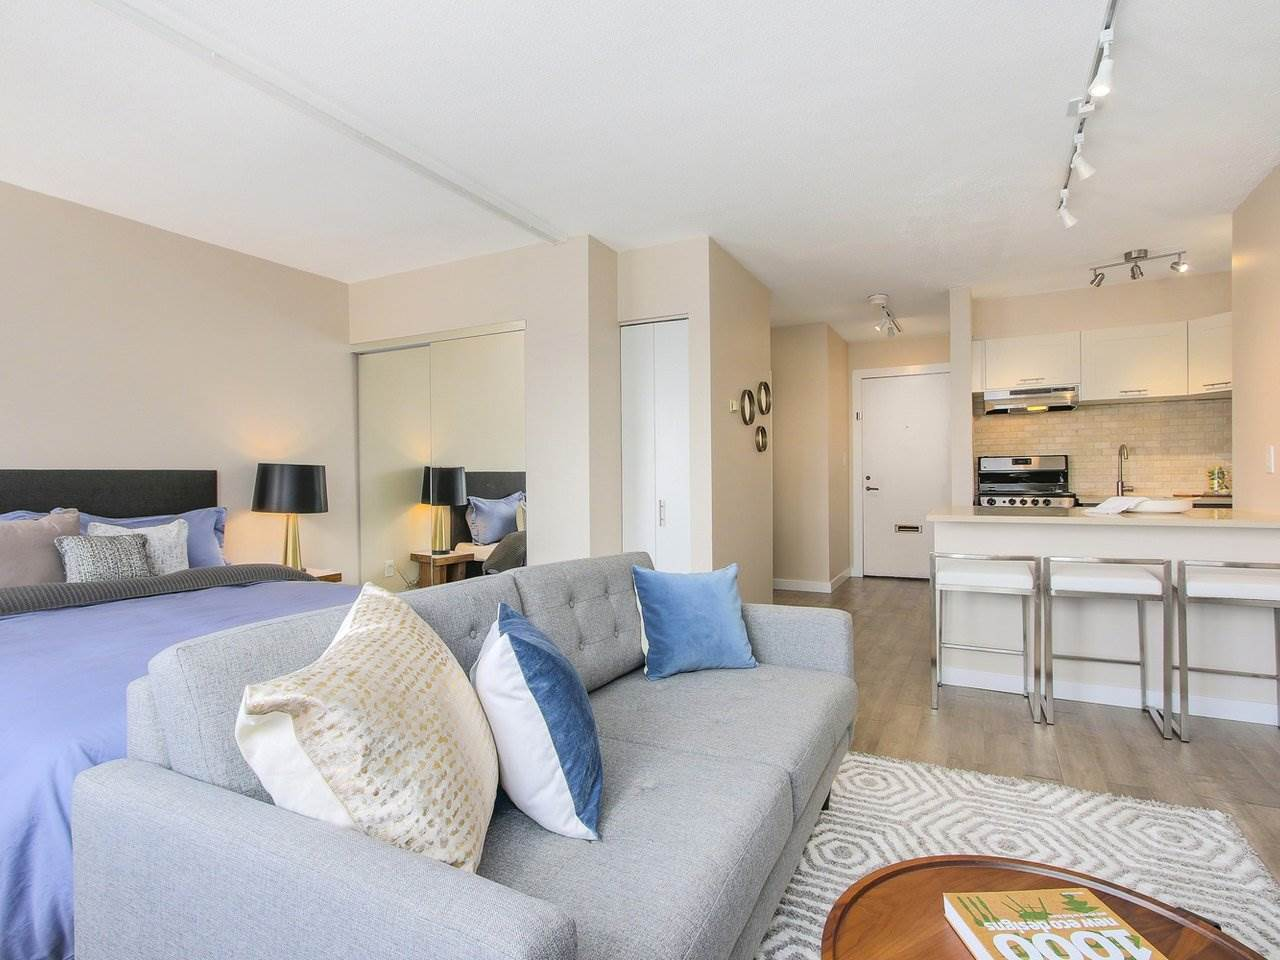 Condo Apartment at 308 1250 BURNABY STREET, Unit 308, Vancouver West, British Columbia. Image 4